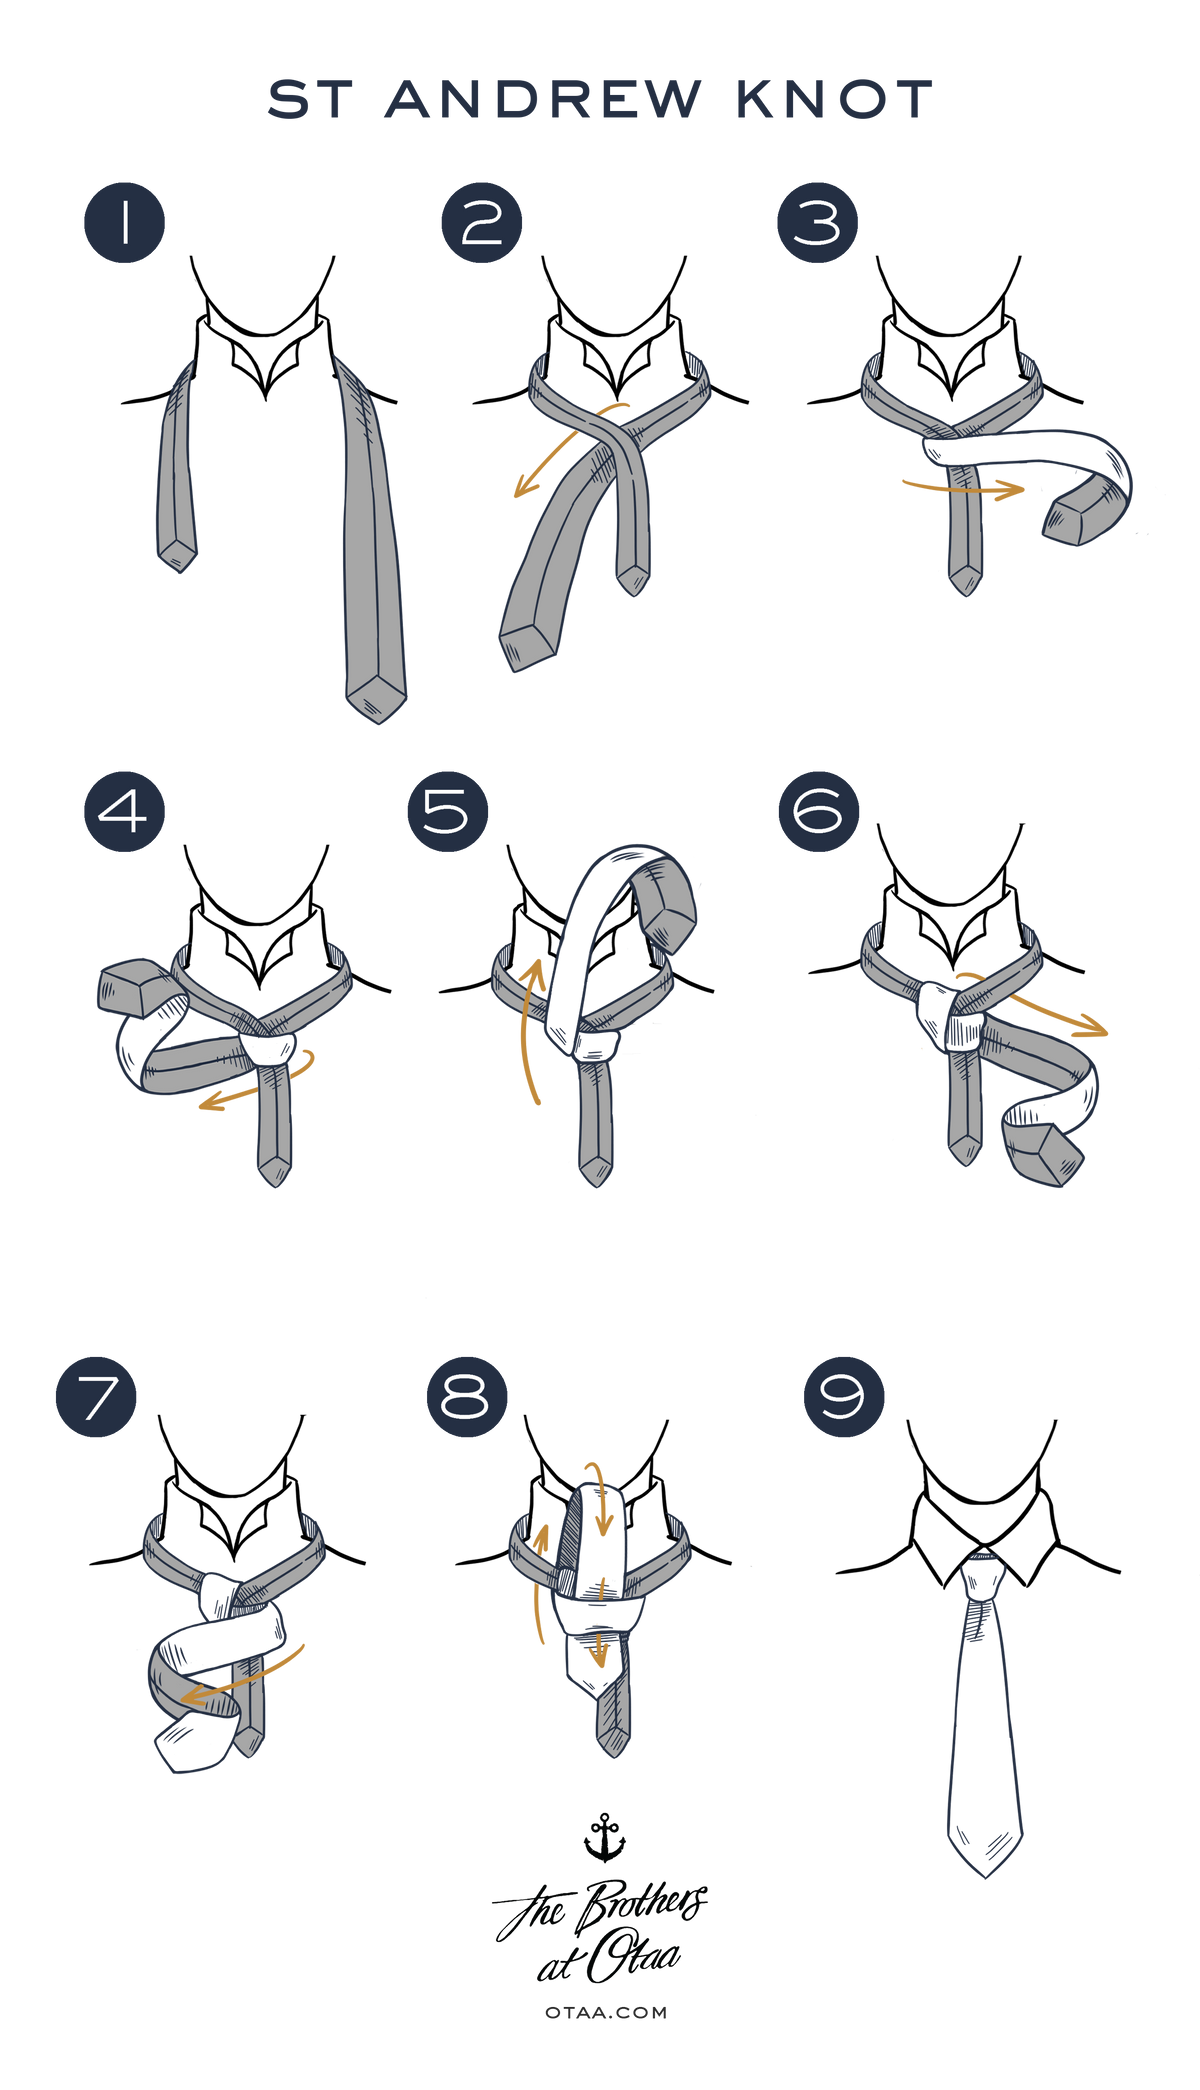 How to tie a st andrew knot - steps